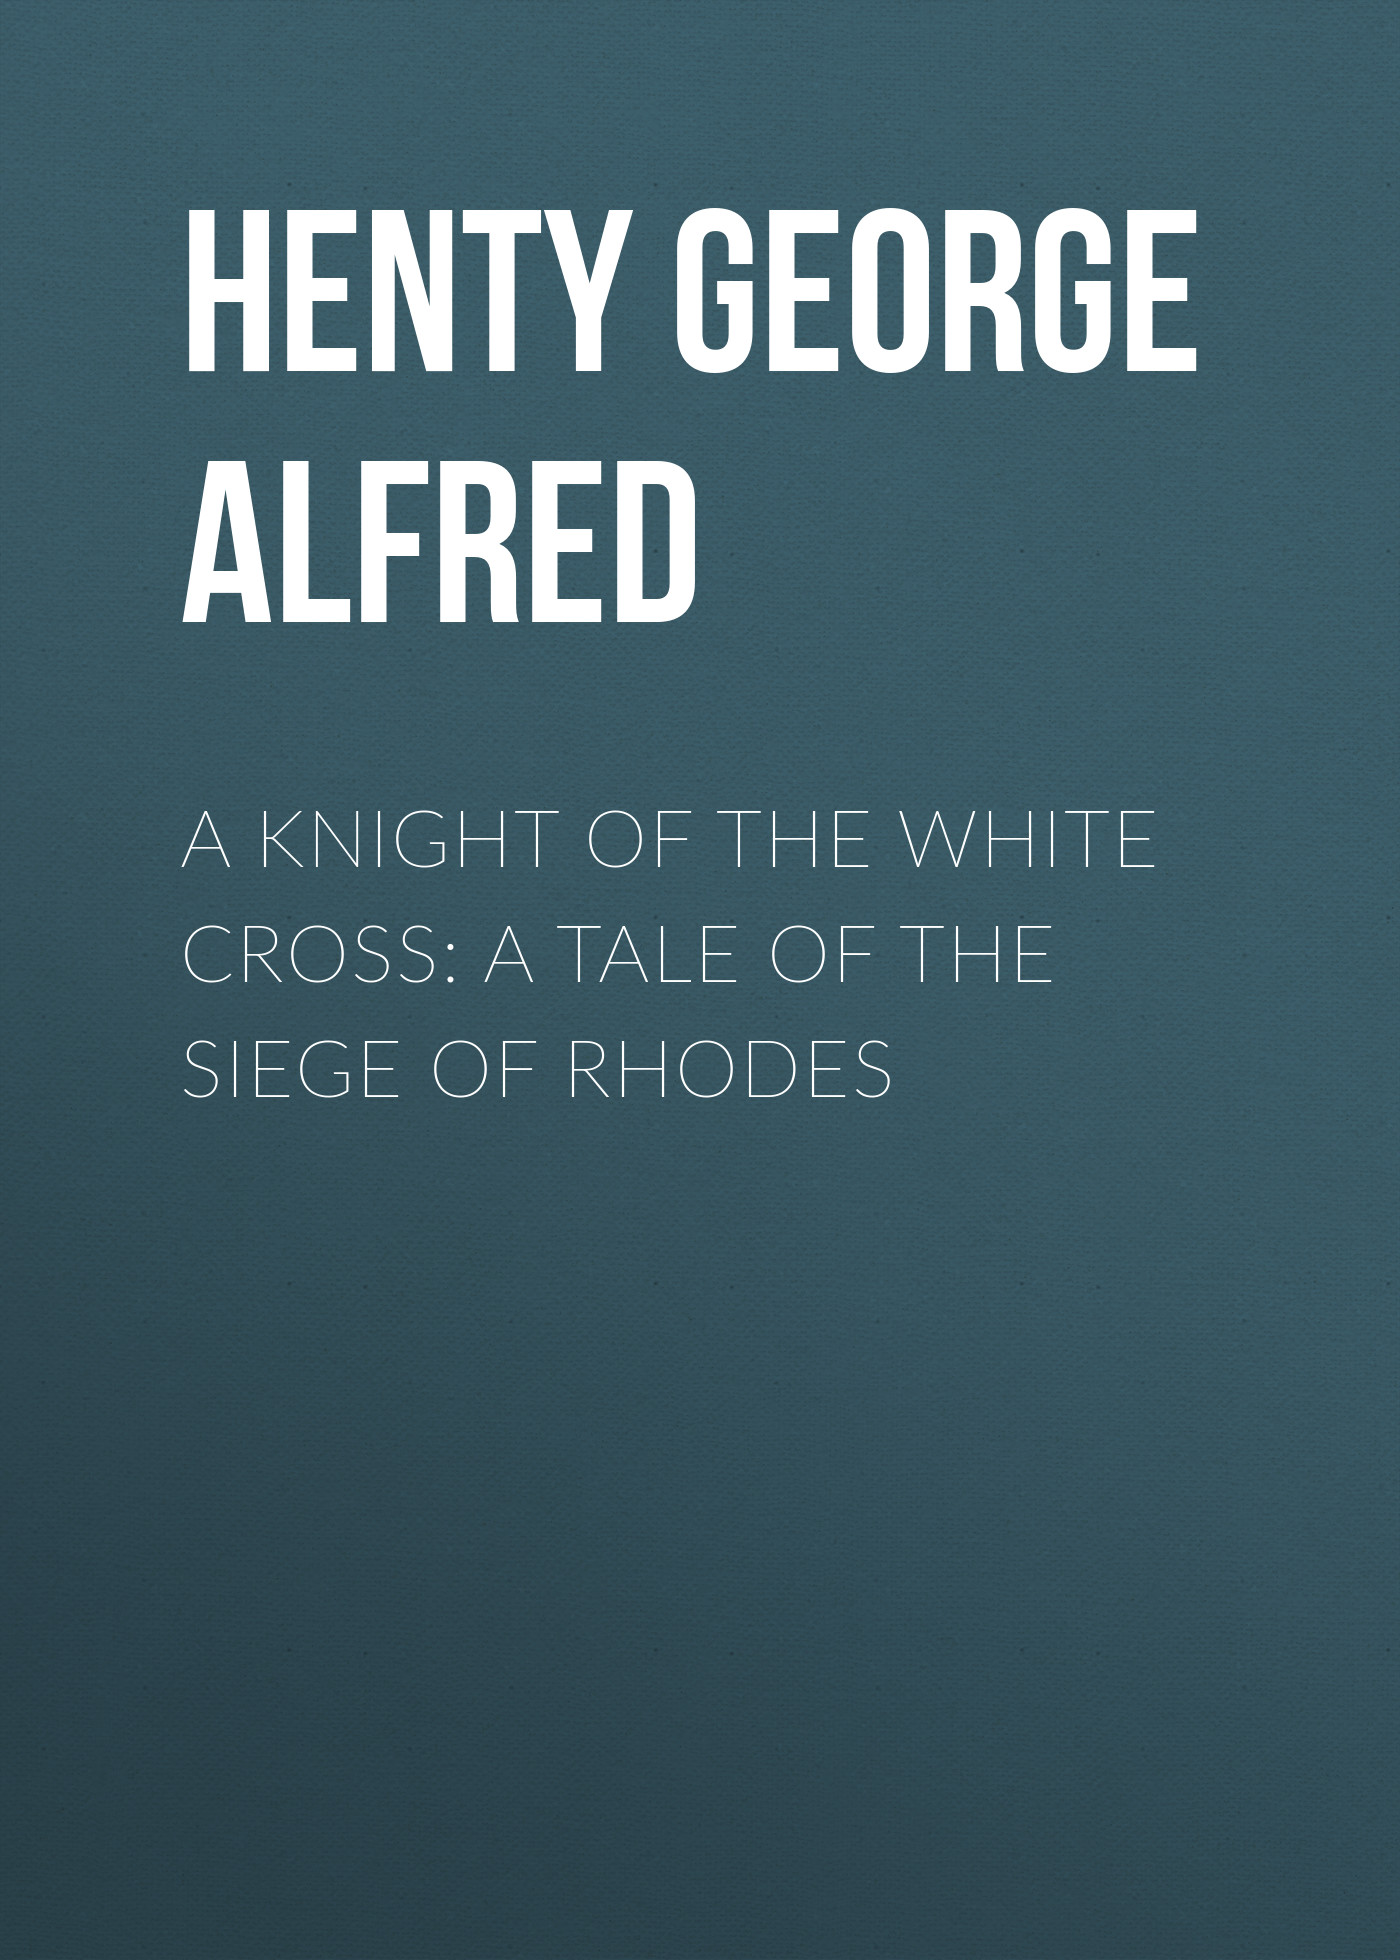 цена на Henty George Alfred A Knight of the White Cross: A Tale of the Siege of Rhodes